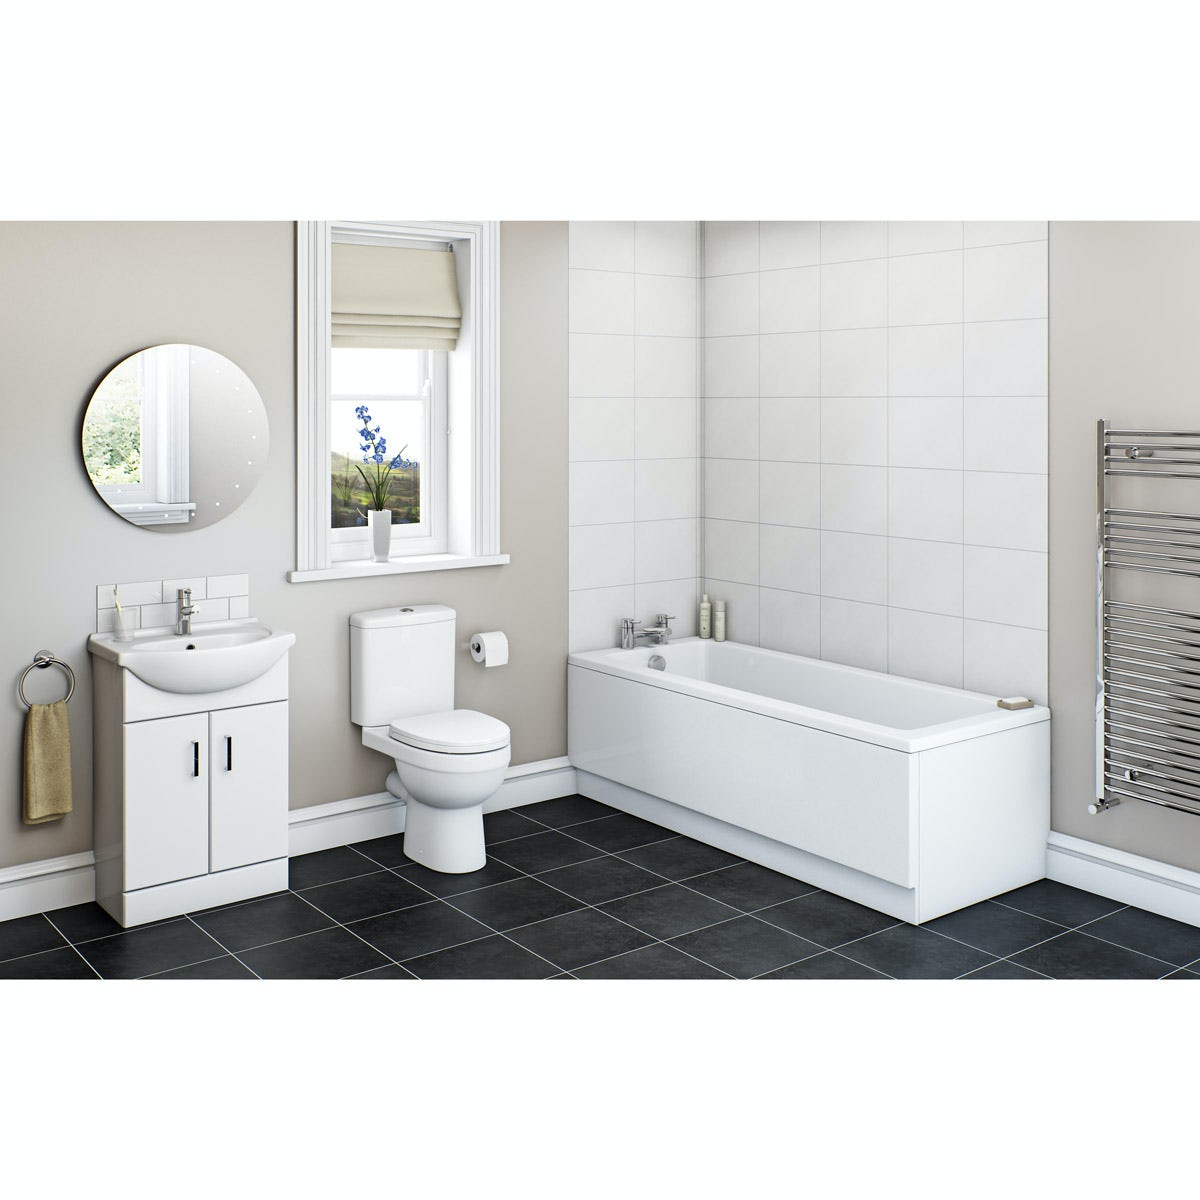 Orchard Eden white vanity bathroom suite with straight bath